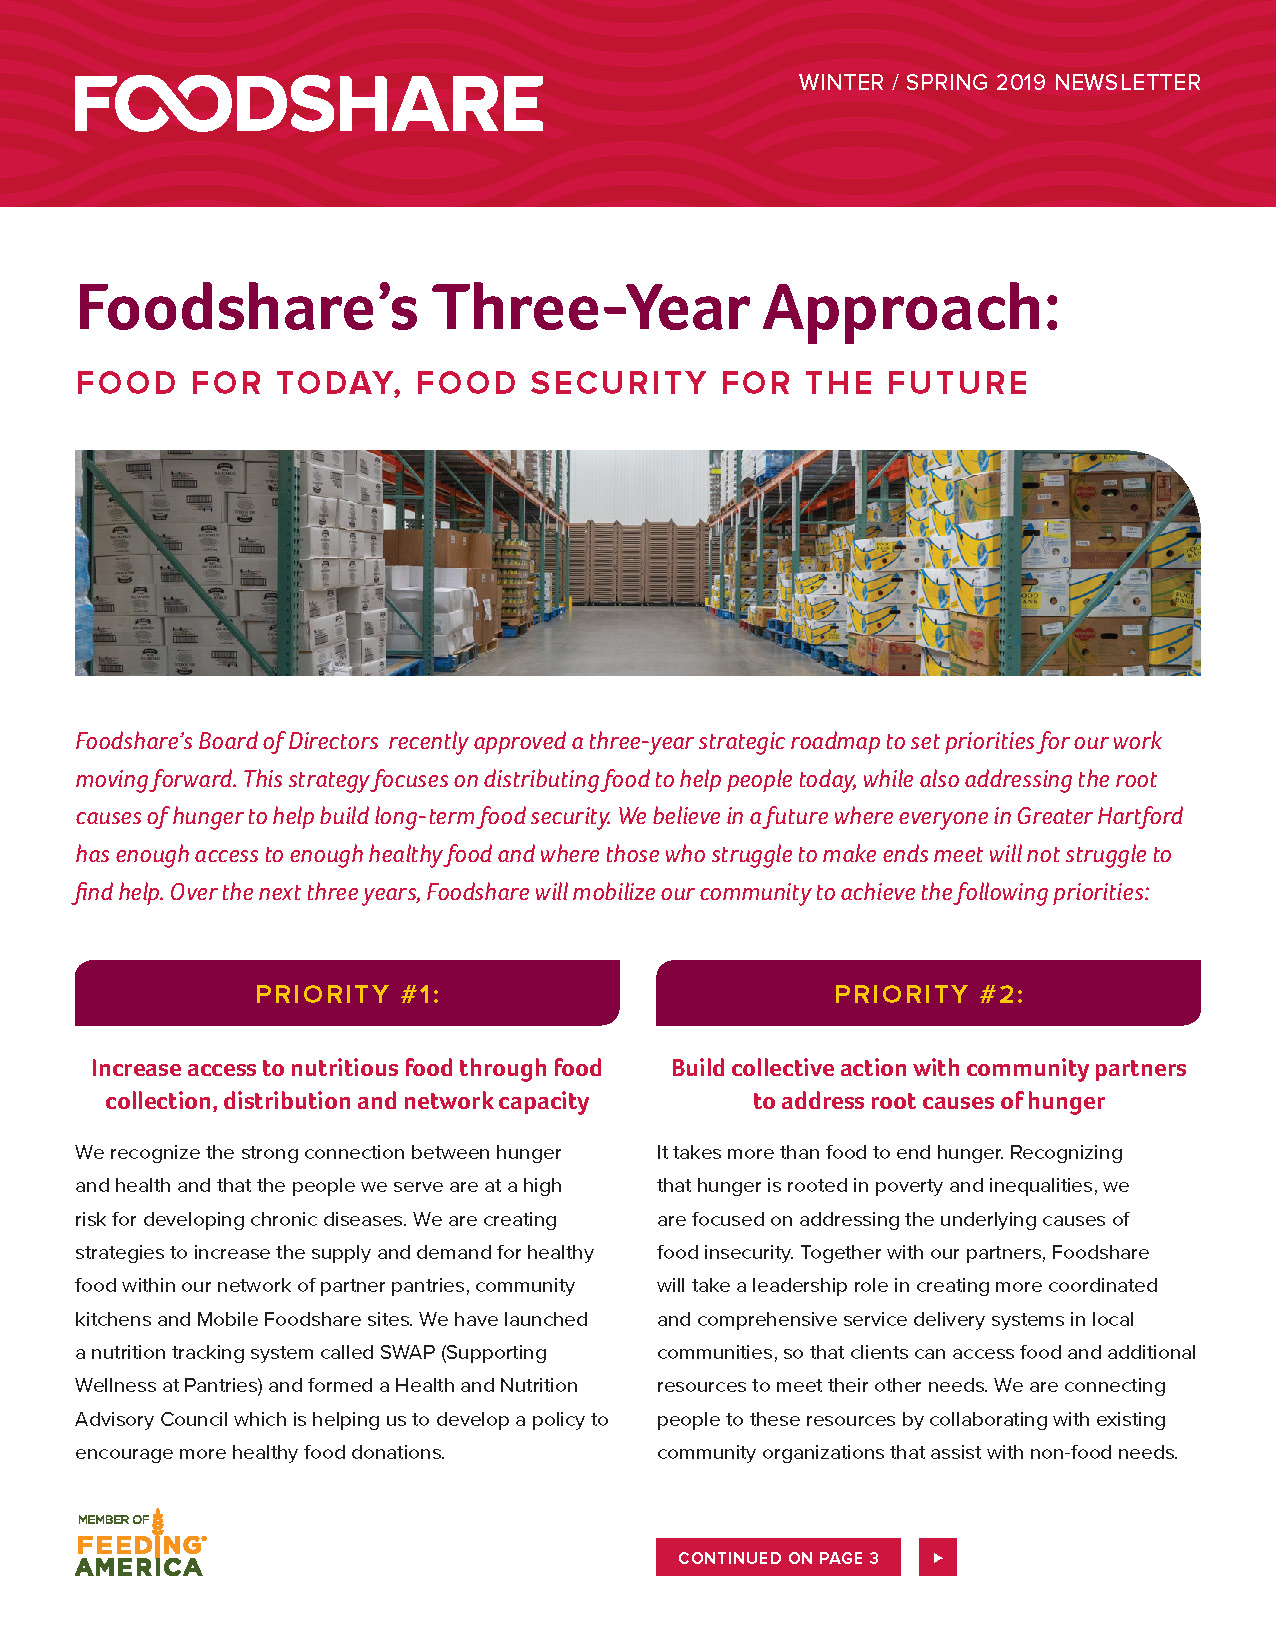 Foodshare Winter/Spring Newsletter 2019